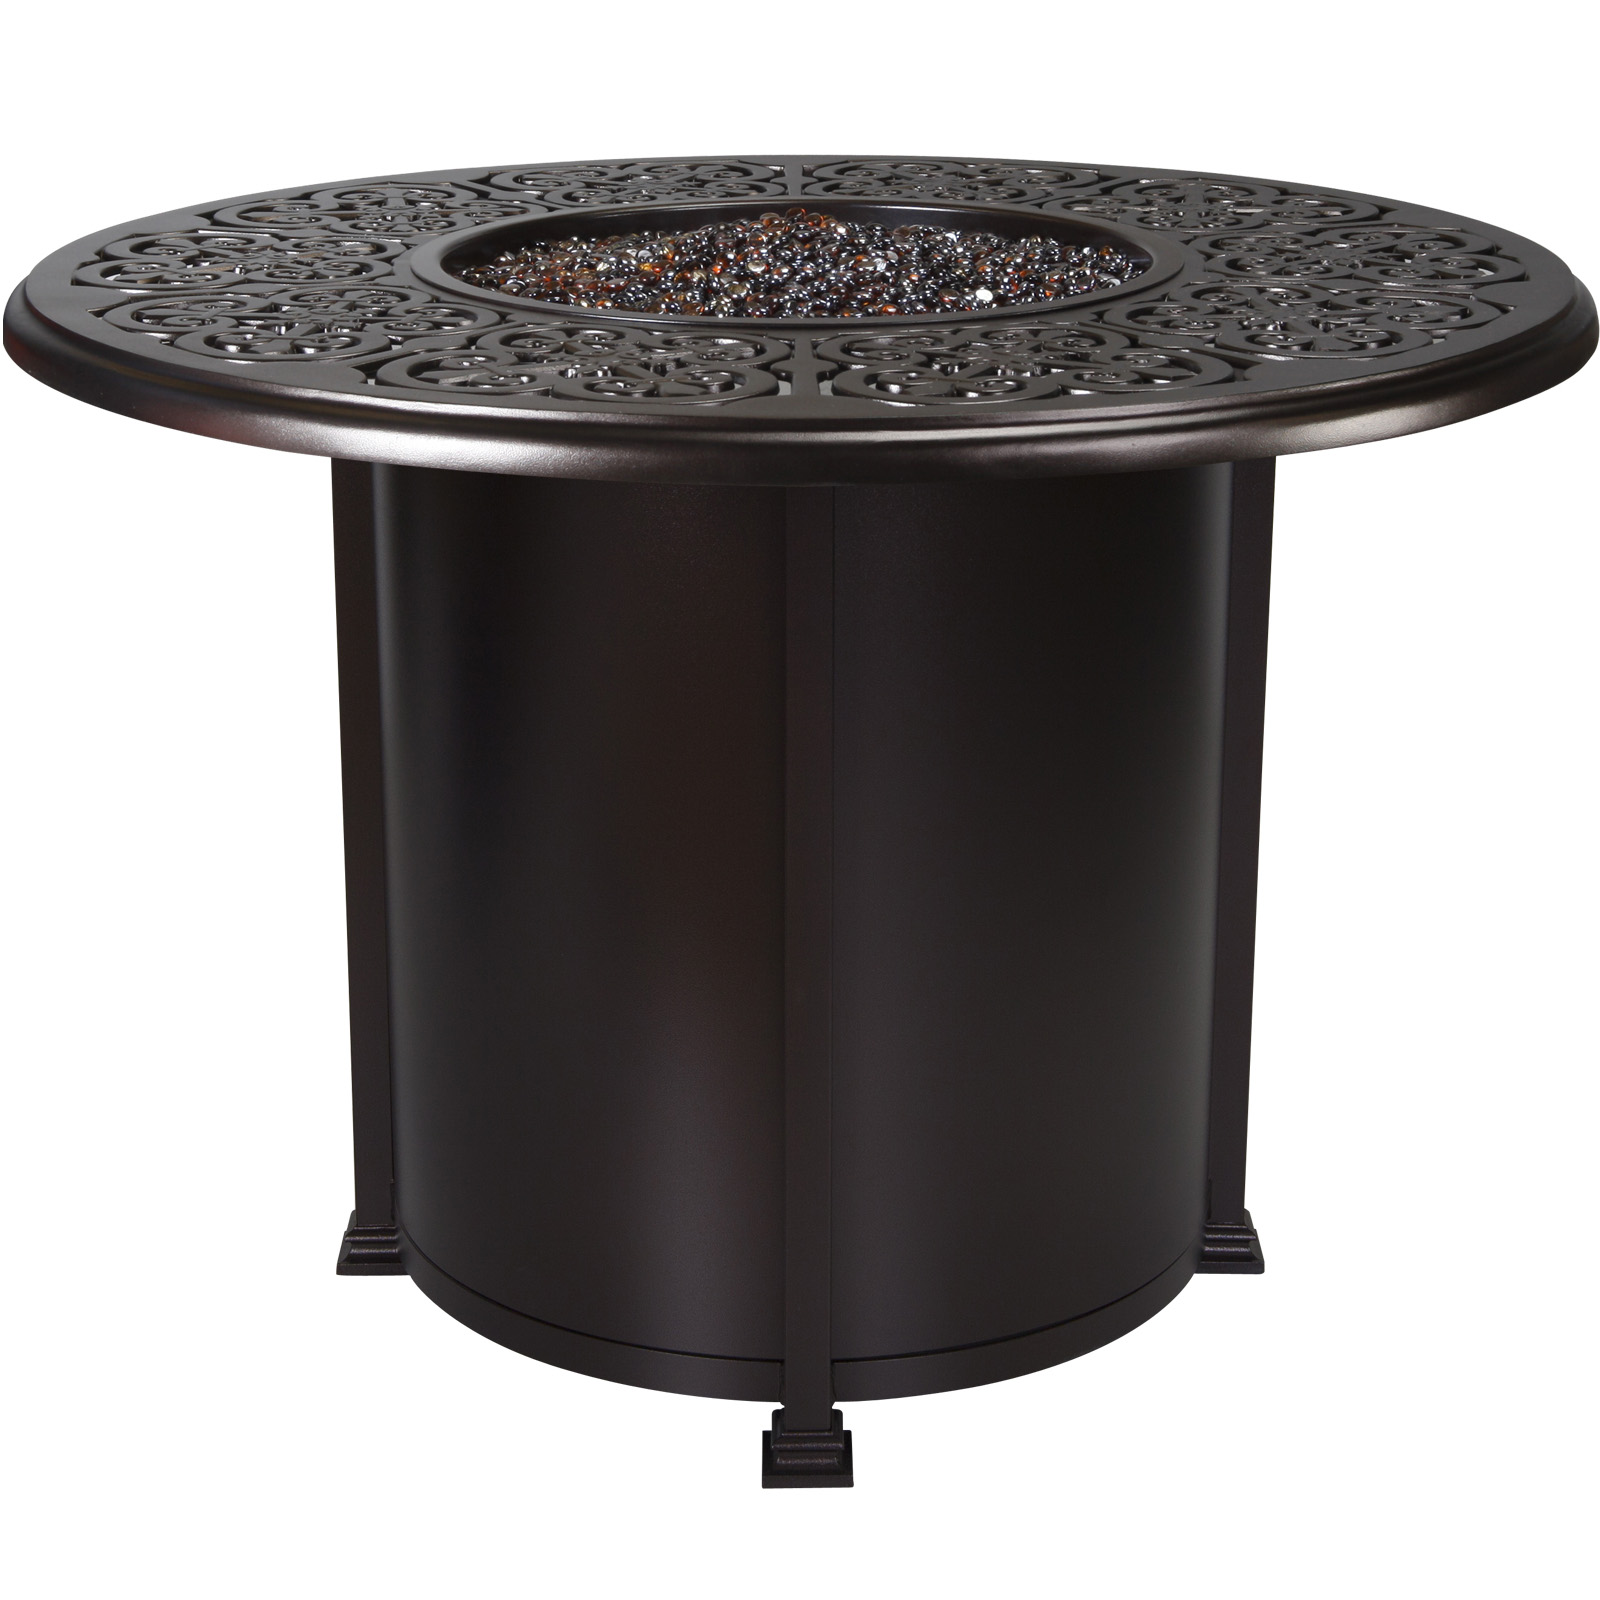 ... OW Lee Hacienda 54 Inch Round Counter Height Fire Pit Table   51 02H ...